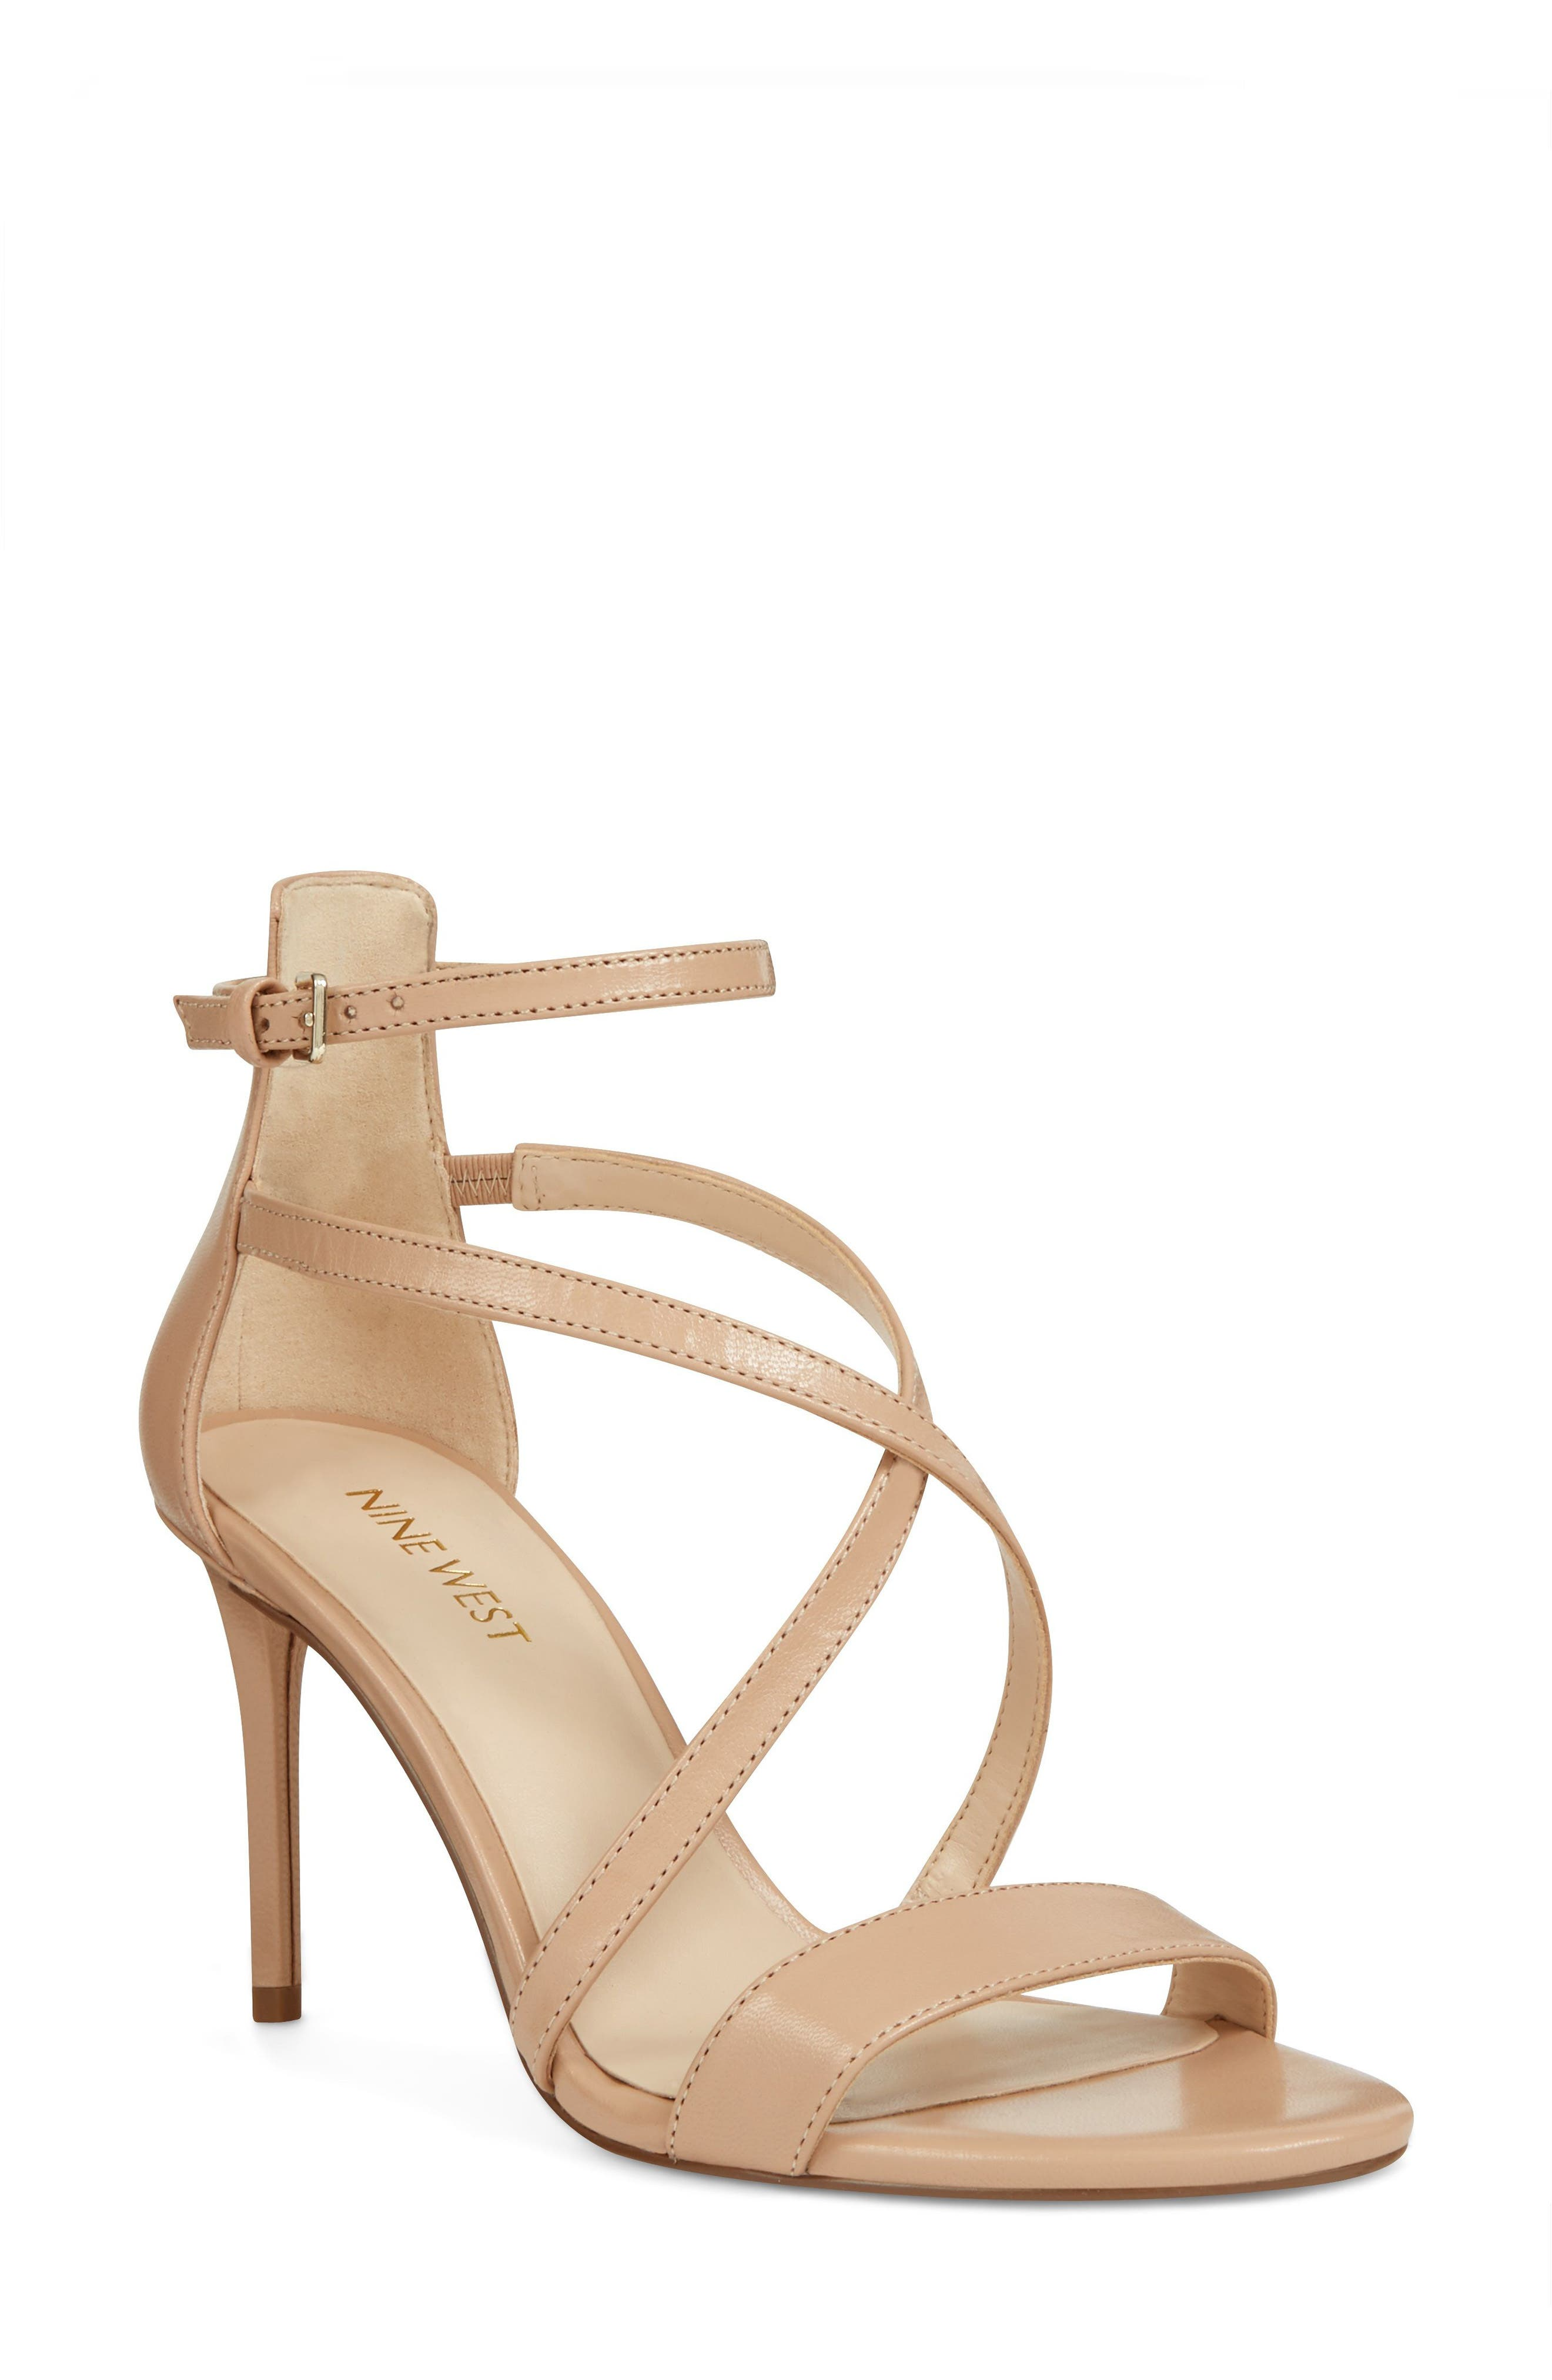 Retail Therapy Strappy Sandal,                         Main,                         color, Natural Leather